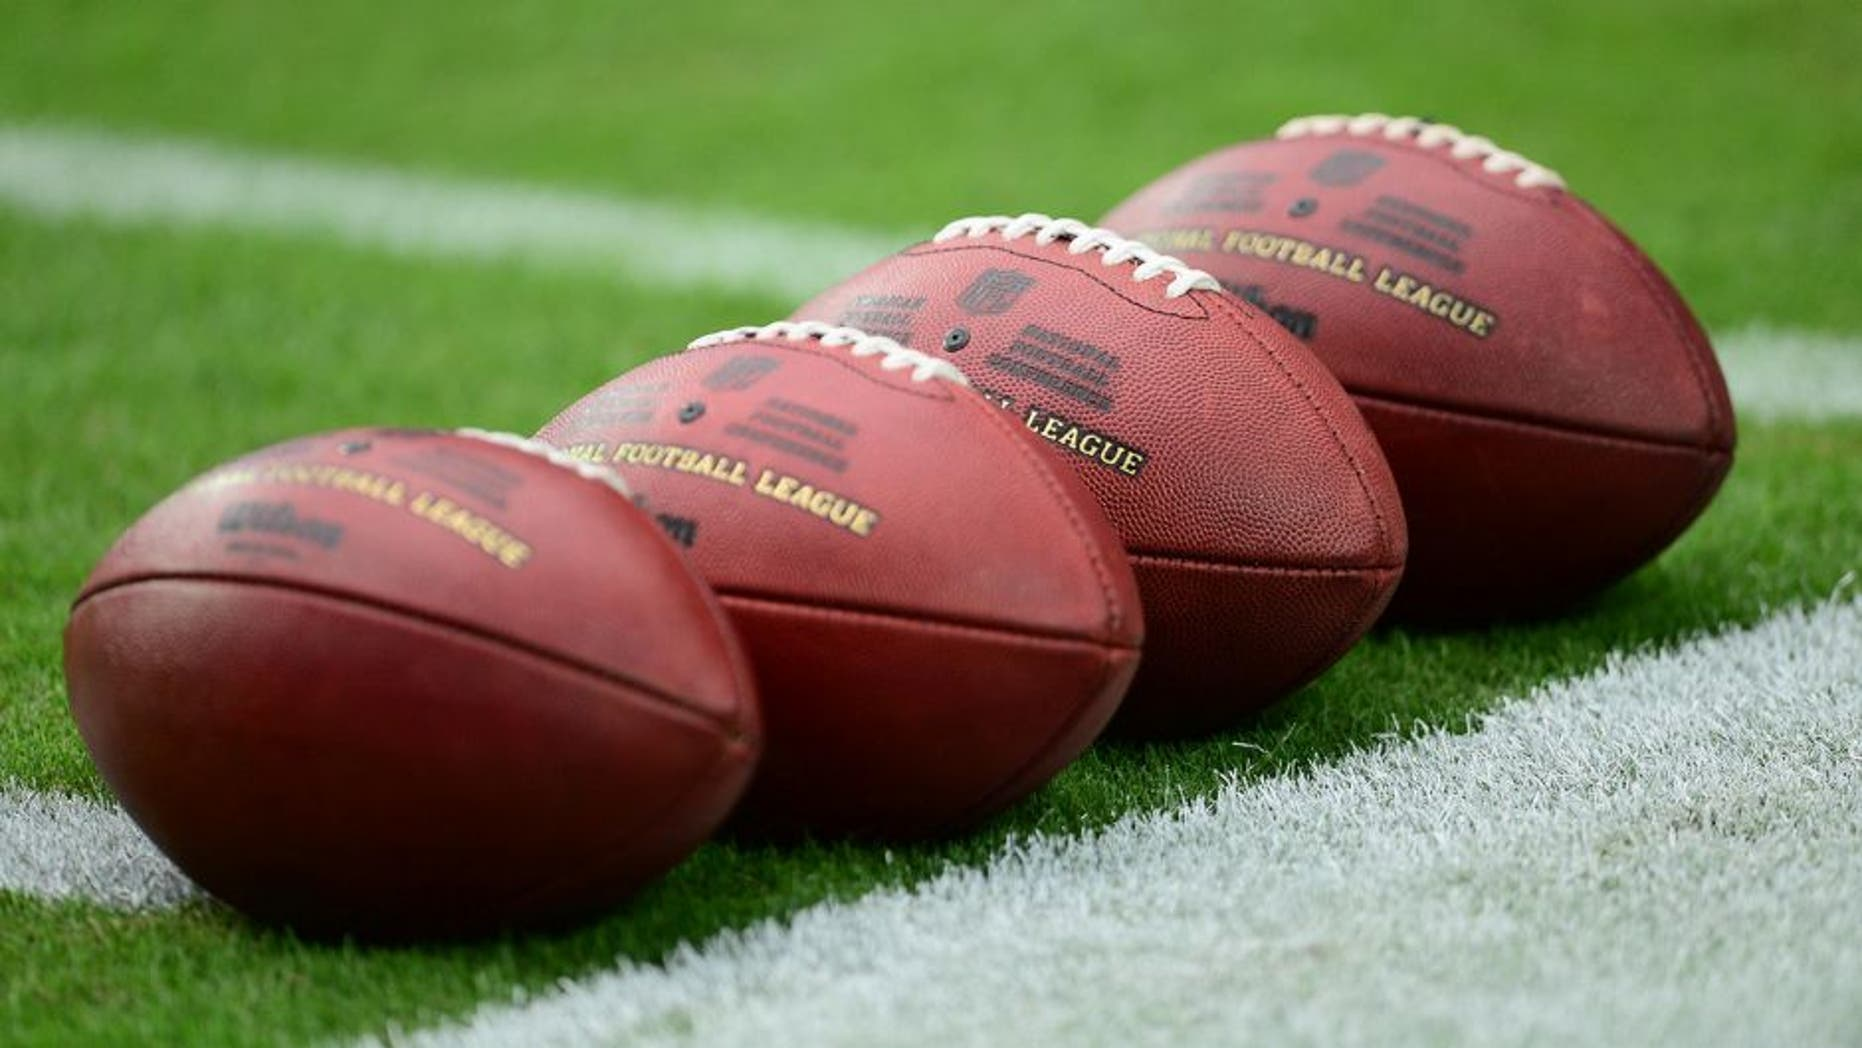 Sep 27, 2015; Glendale, AZ, USA; Footballs lie on the field prior to the game between the Arizona Cardinals and the San Francisco 49ers at University of Phoenix Stadium. Mandatory Credit: Joe Camporeale-USA TODAY Sports